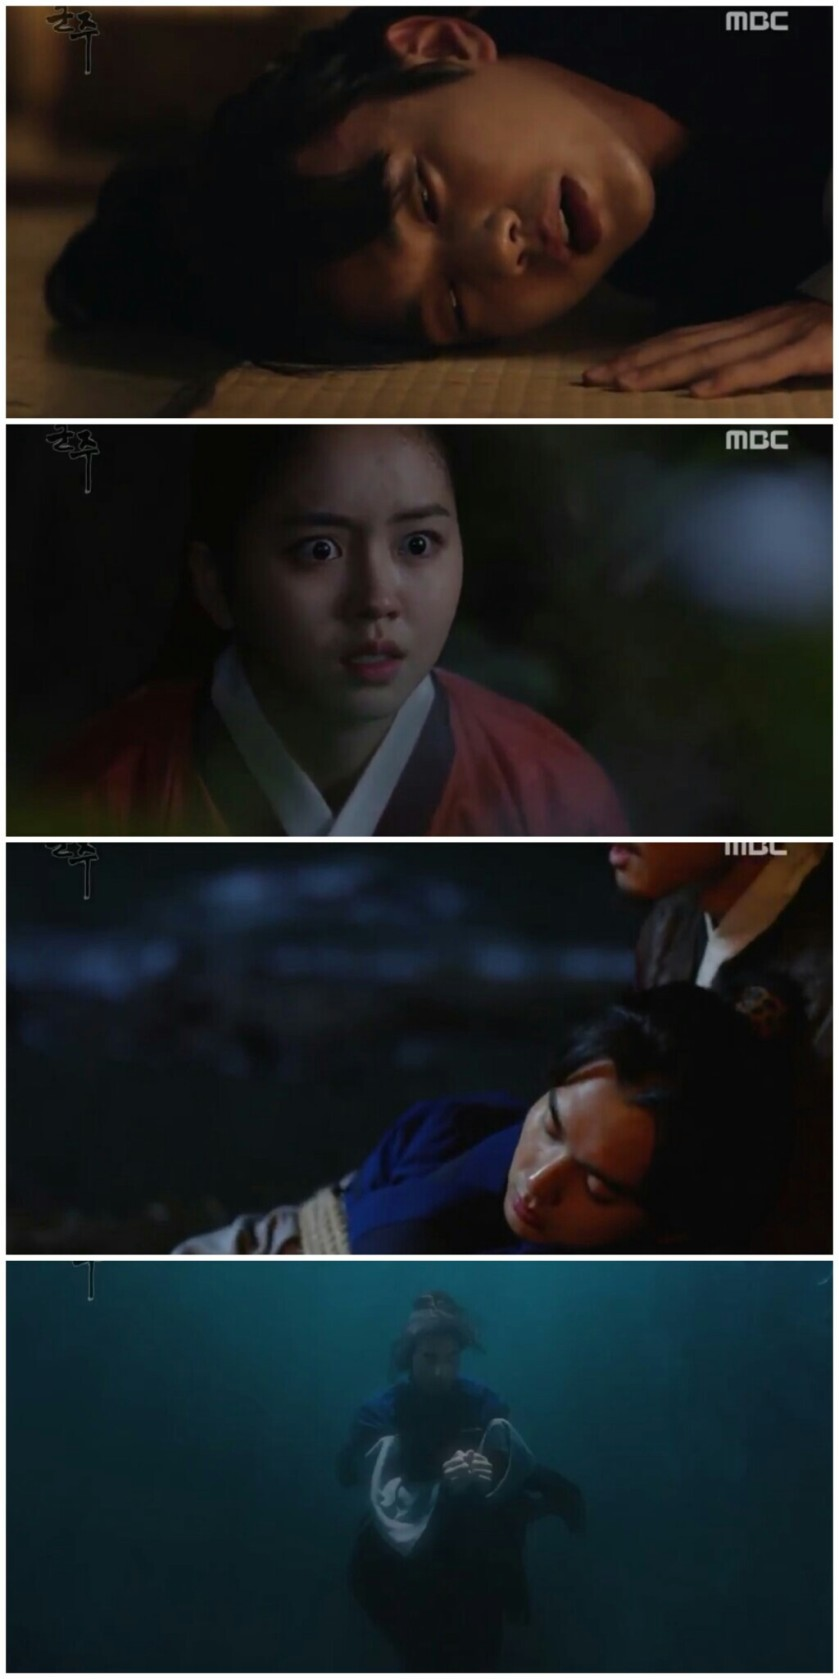 Ruler Master of the Mask ep 21 22 drown